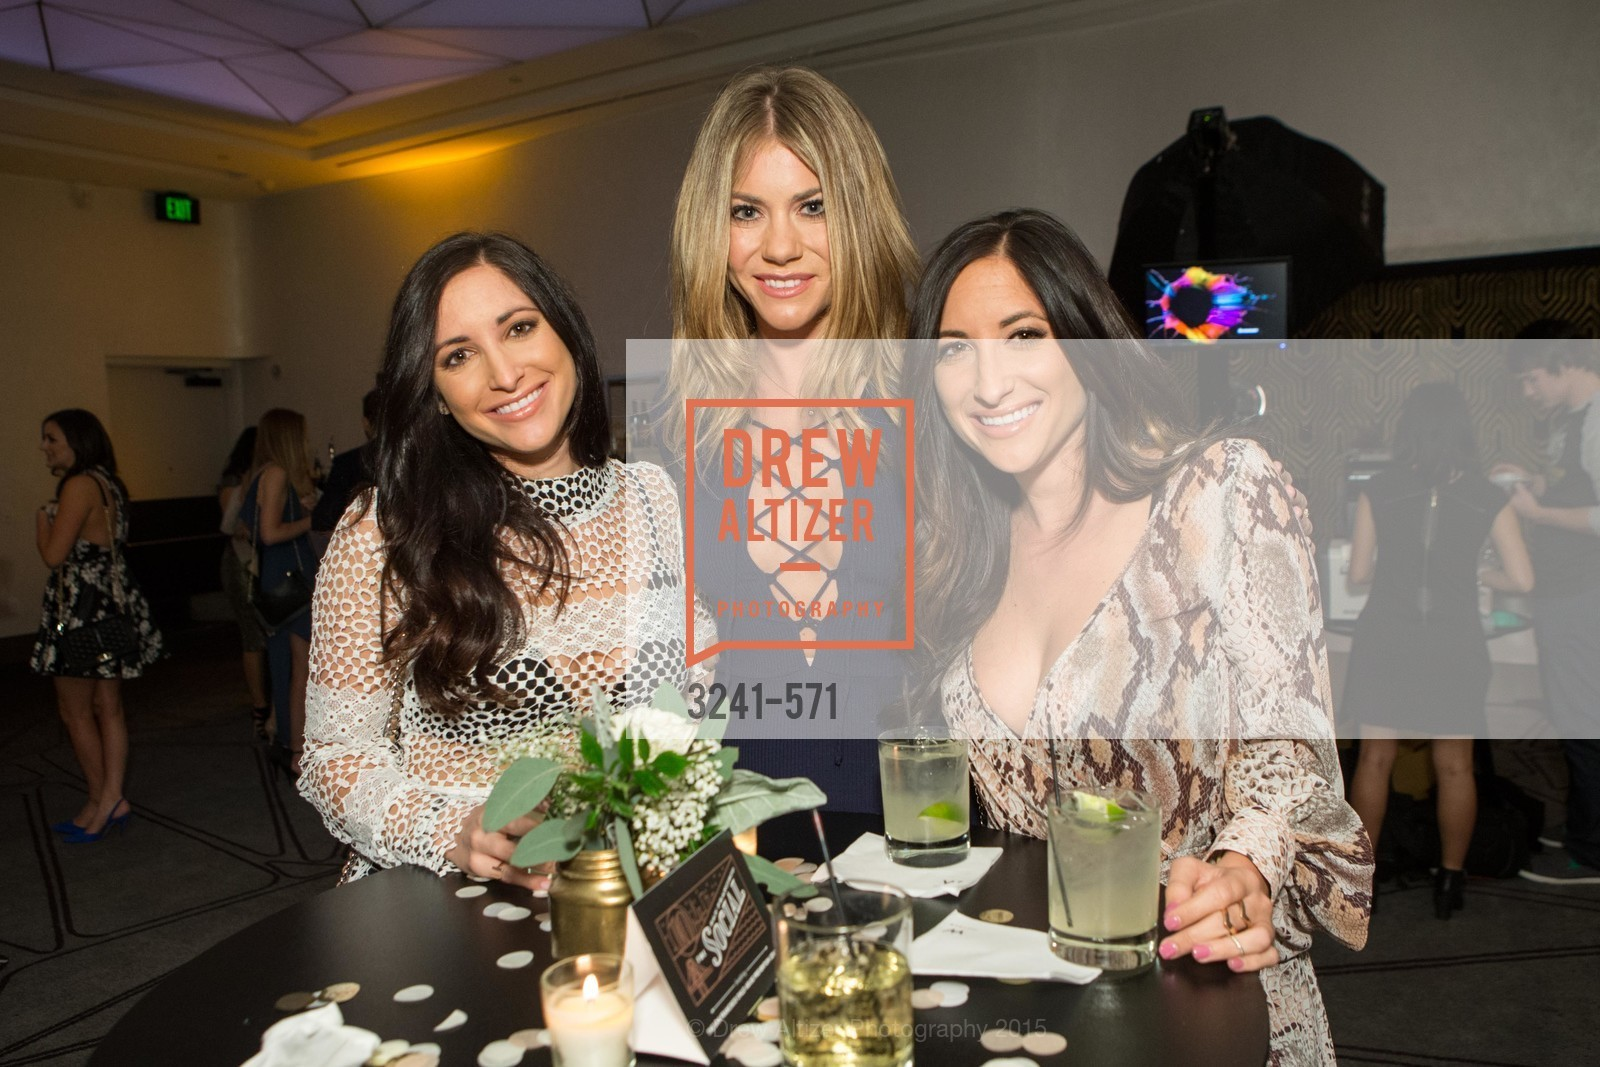 Mandy Labun, Katie McDowell, Molly Labun, The 10th Annual San Francisco Social, W Hotel. 181 3rd St, November 21st, 2015,Drew Altizer, Drew Altizer Photography, full-service agency, private events, San Francisco photographer, photographer california